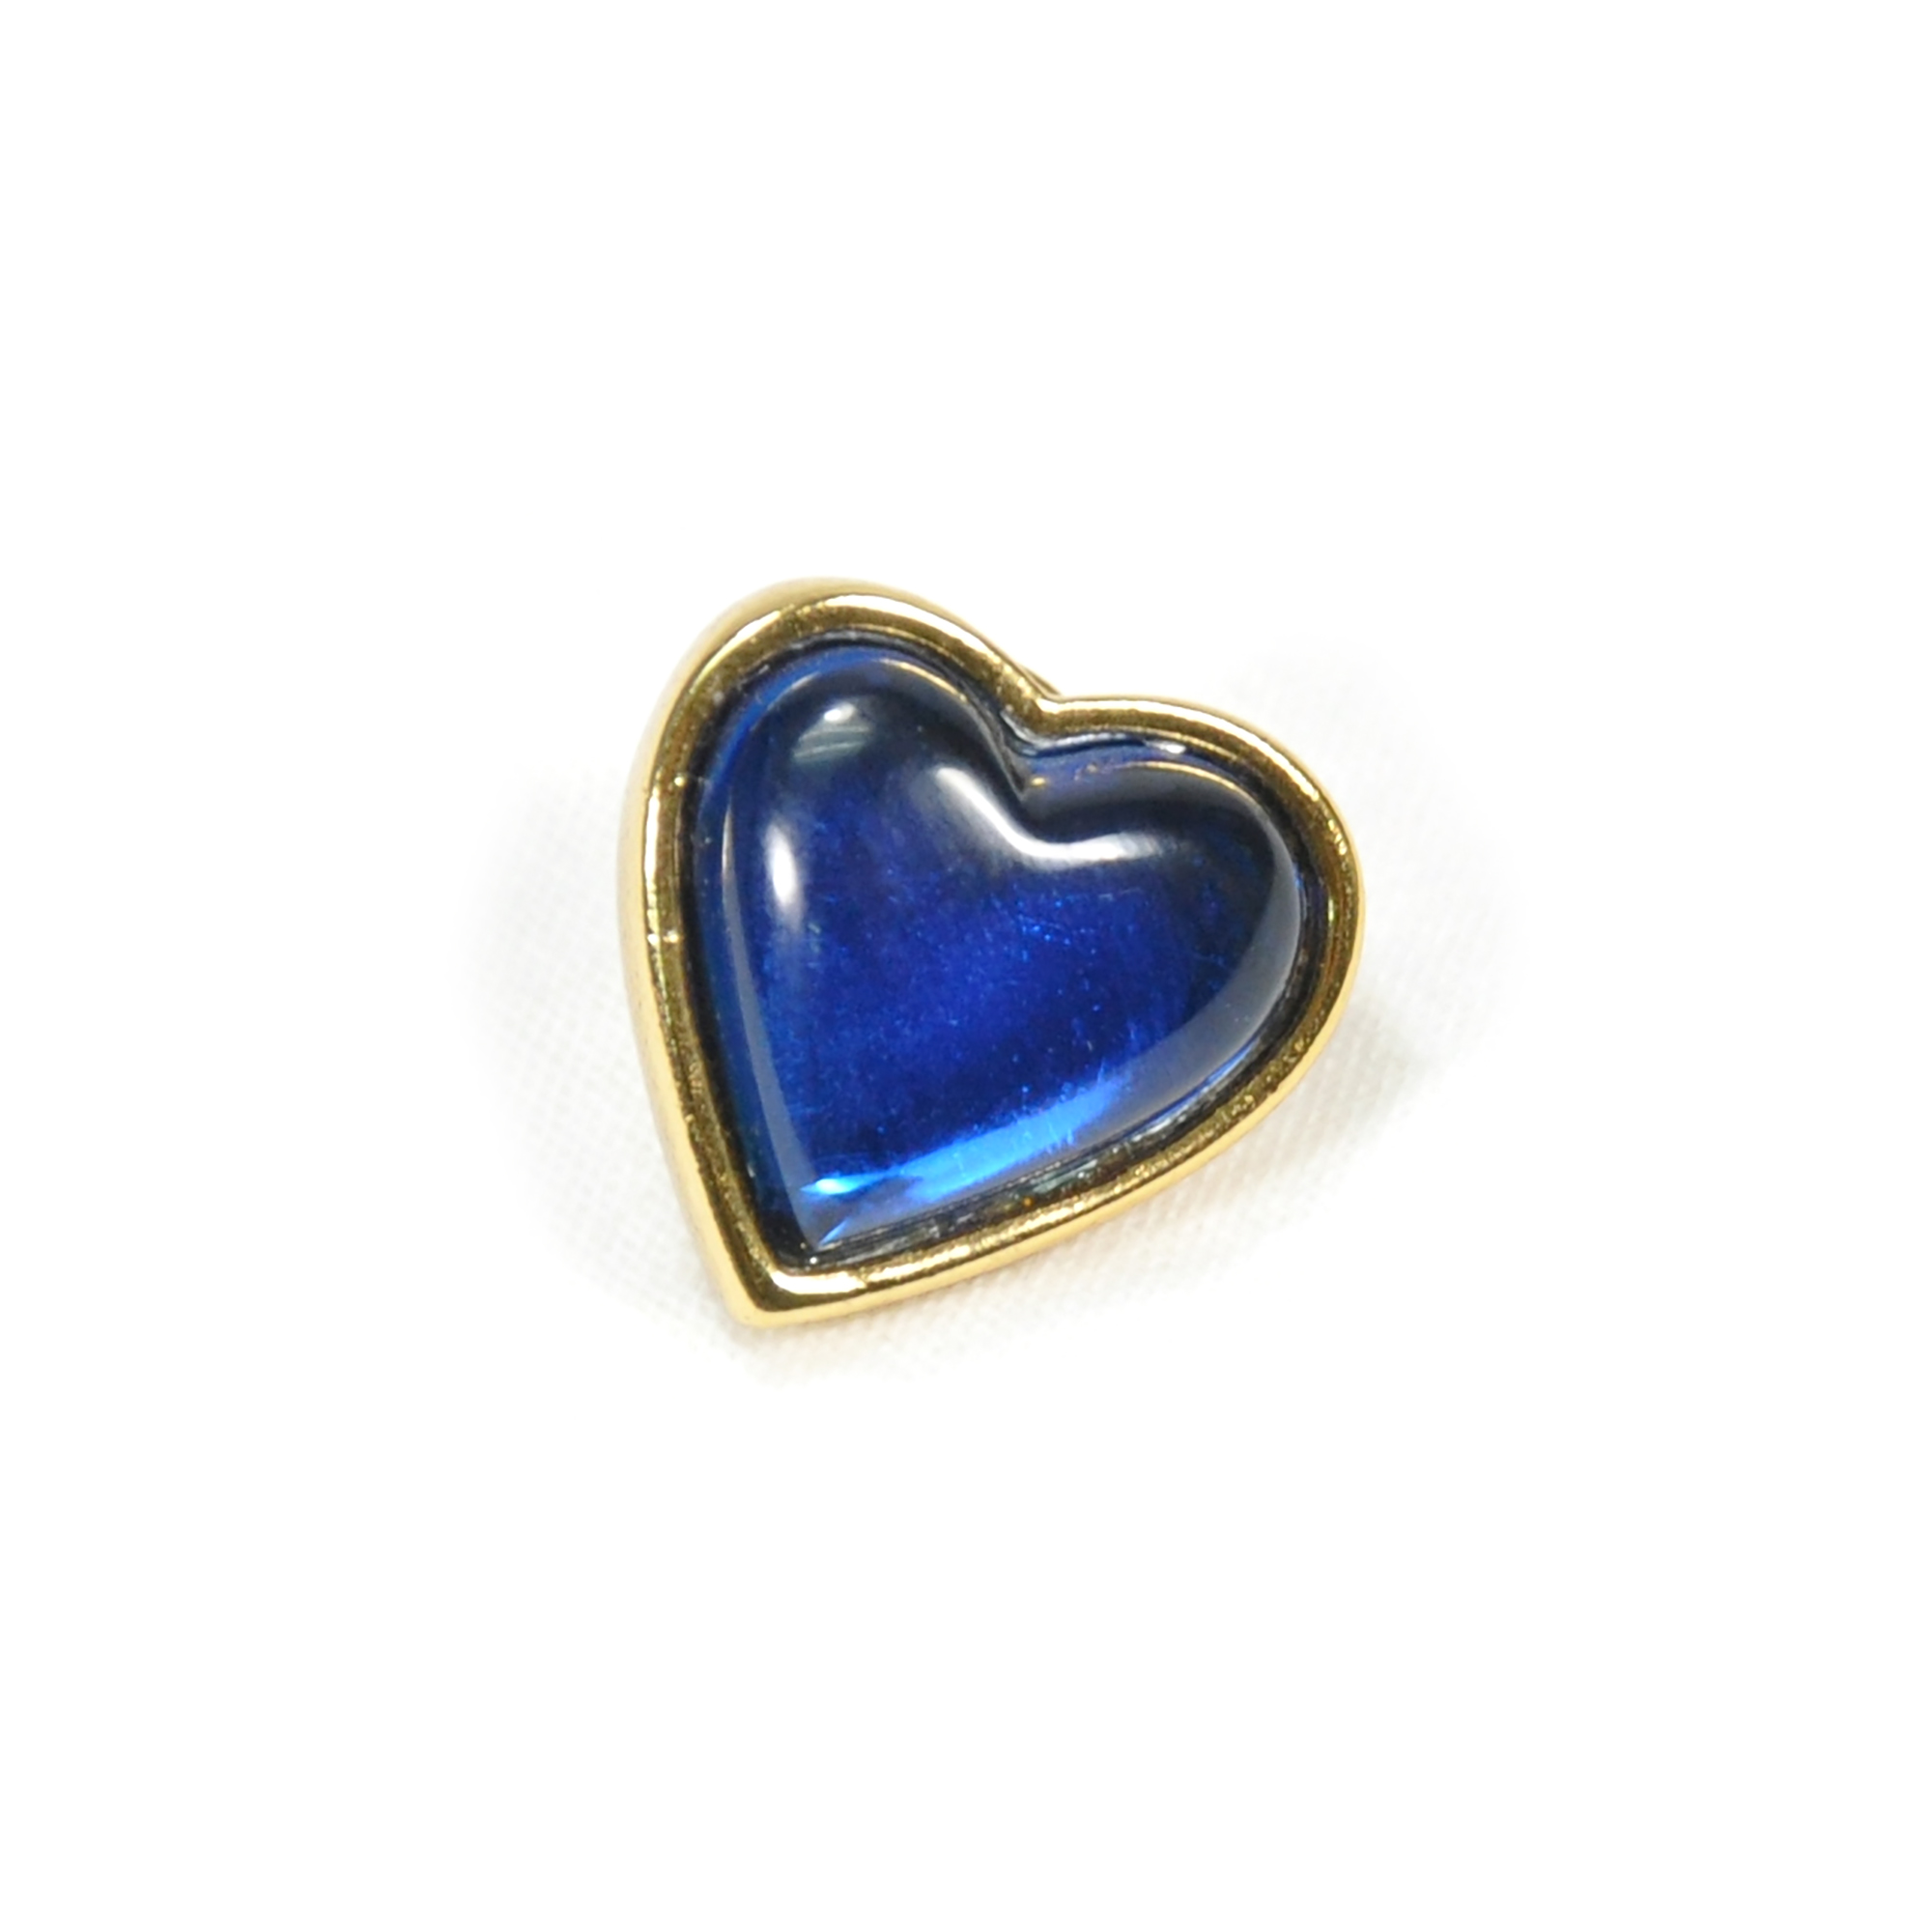 2ad127ba00f Authentic Vintage Yves Saint Laurent Glass Heart Brooch Blue  (TFC-203-00035) - THE FIFTH COLLECTION